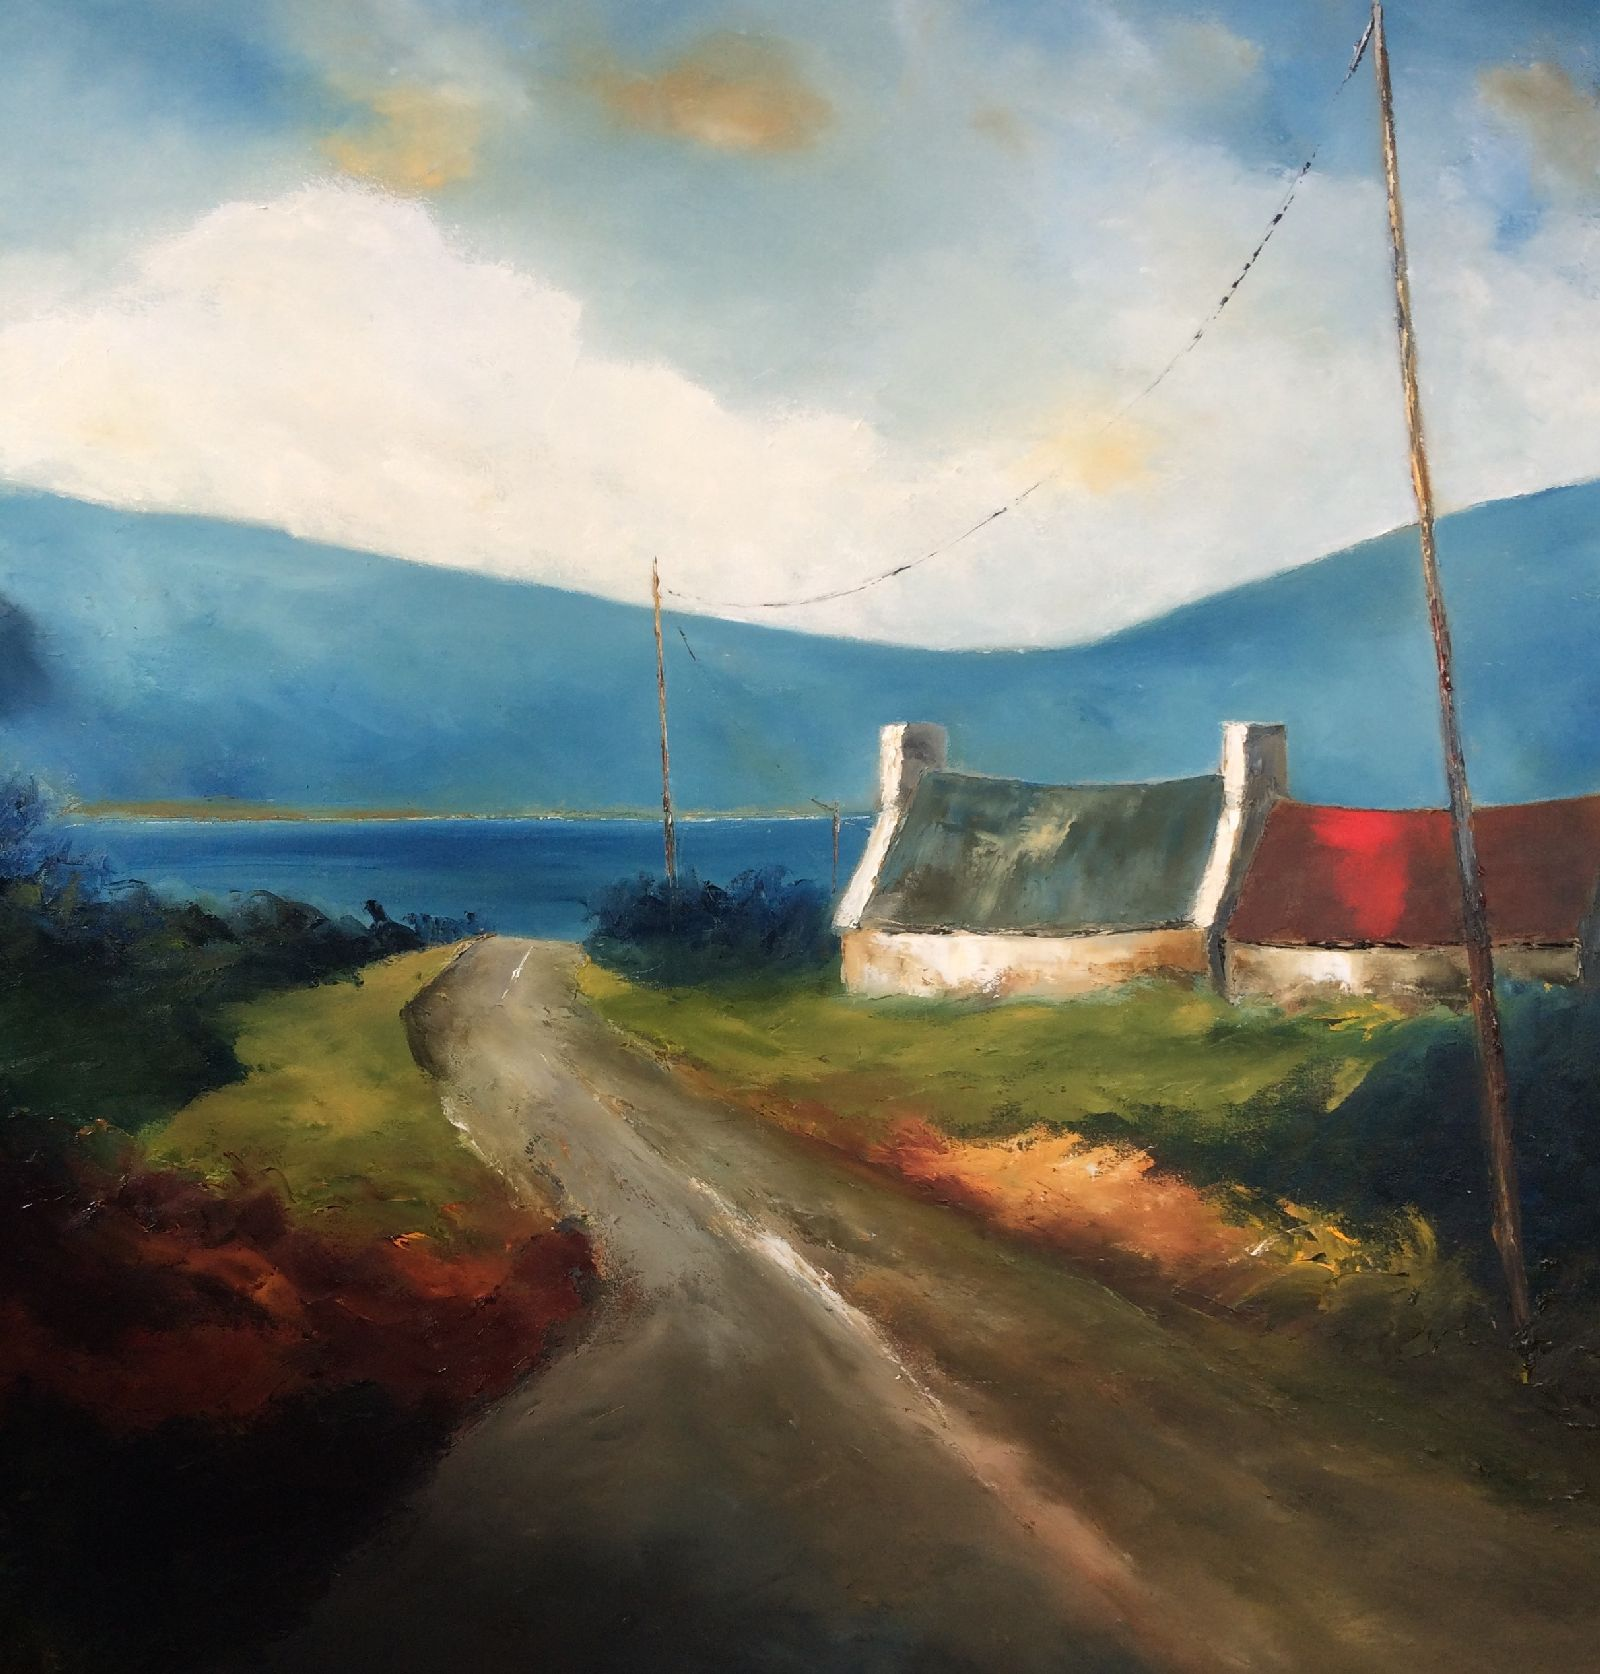 A Turn in the Road  by Padraig McCaul